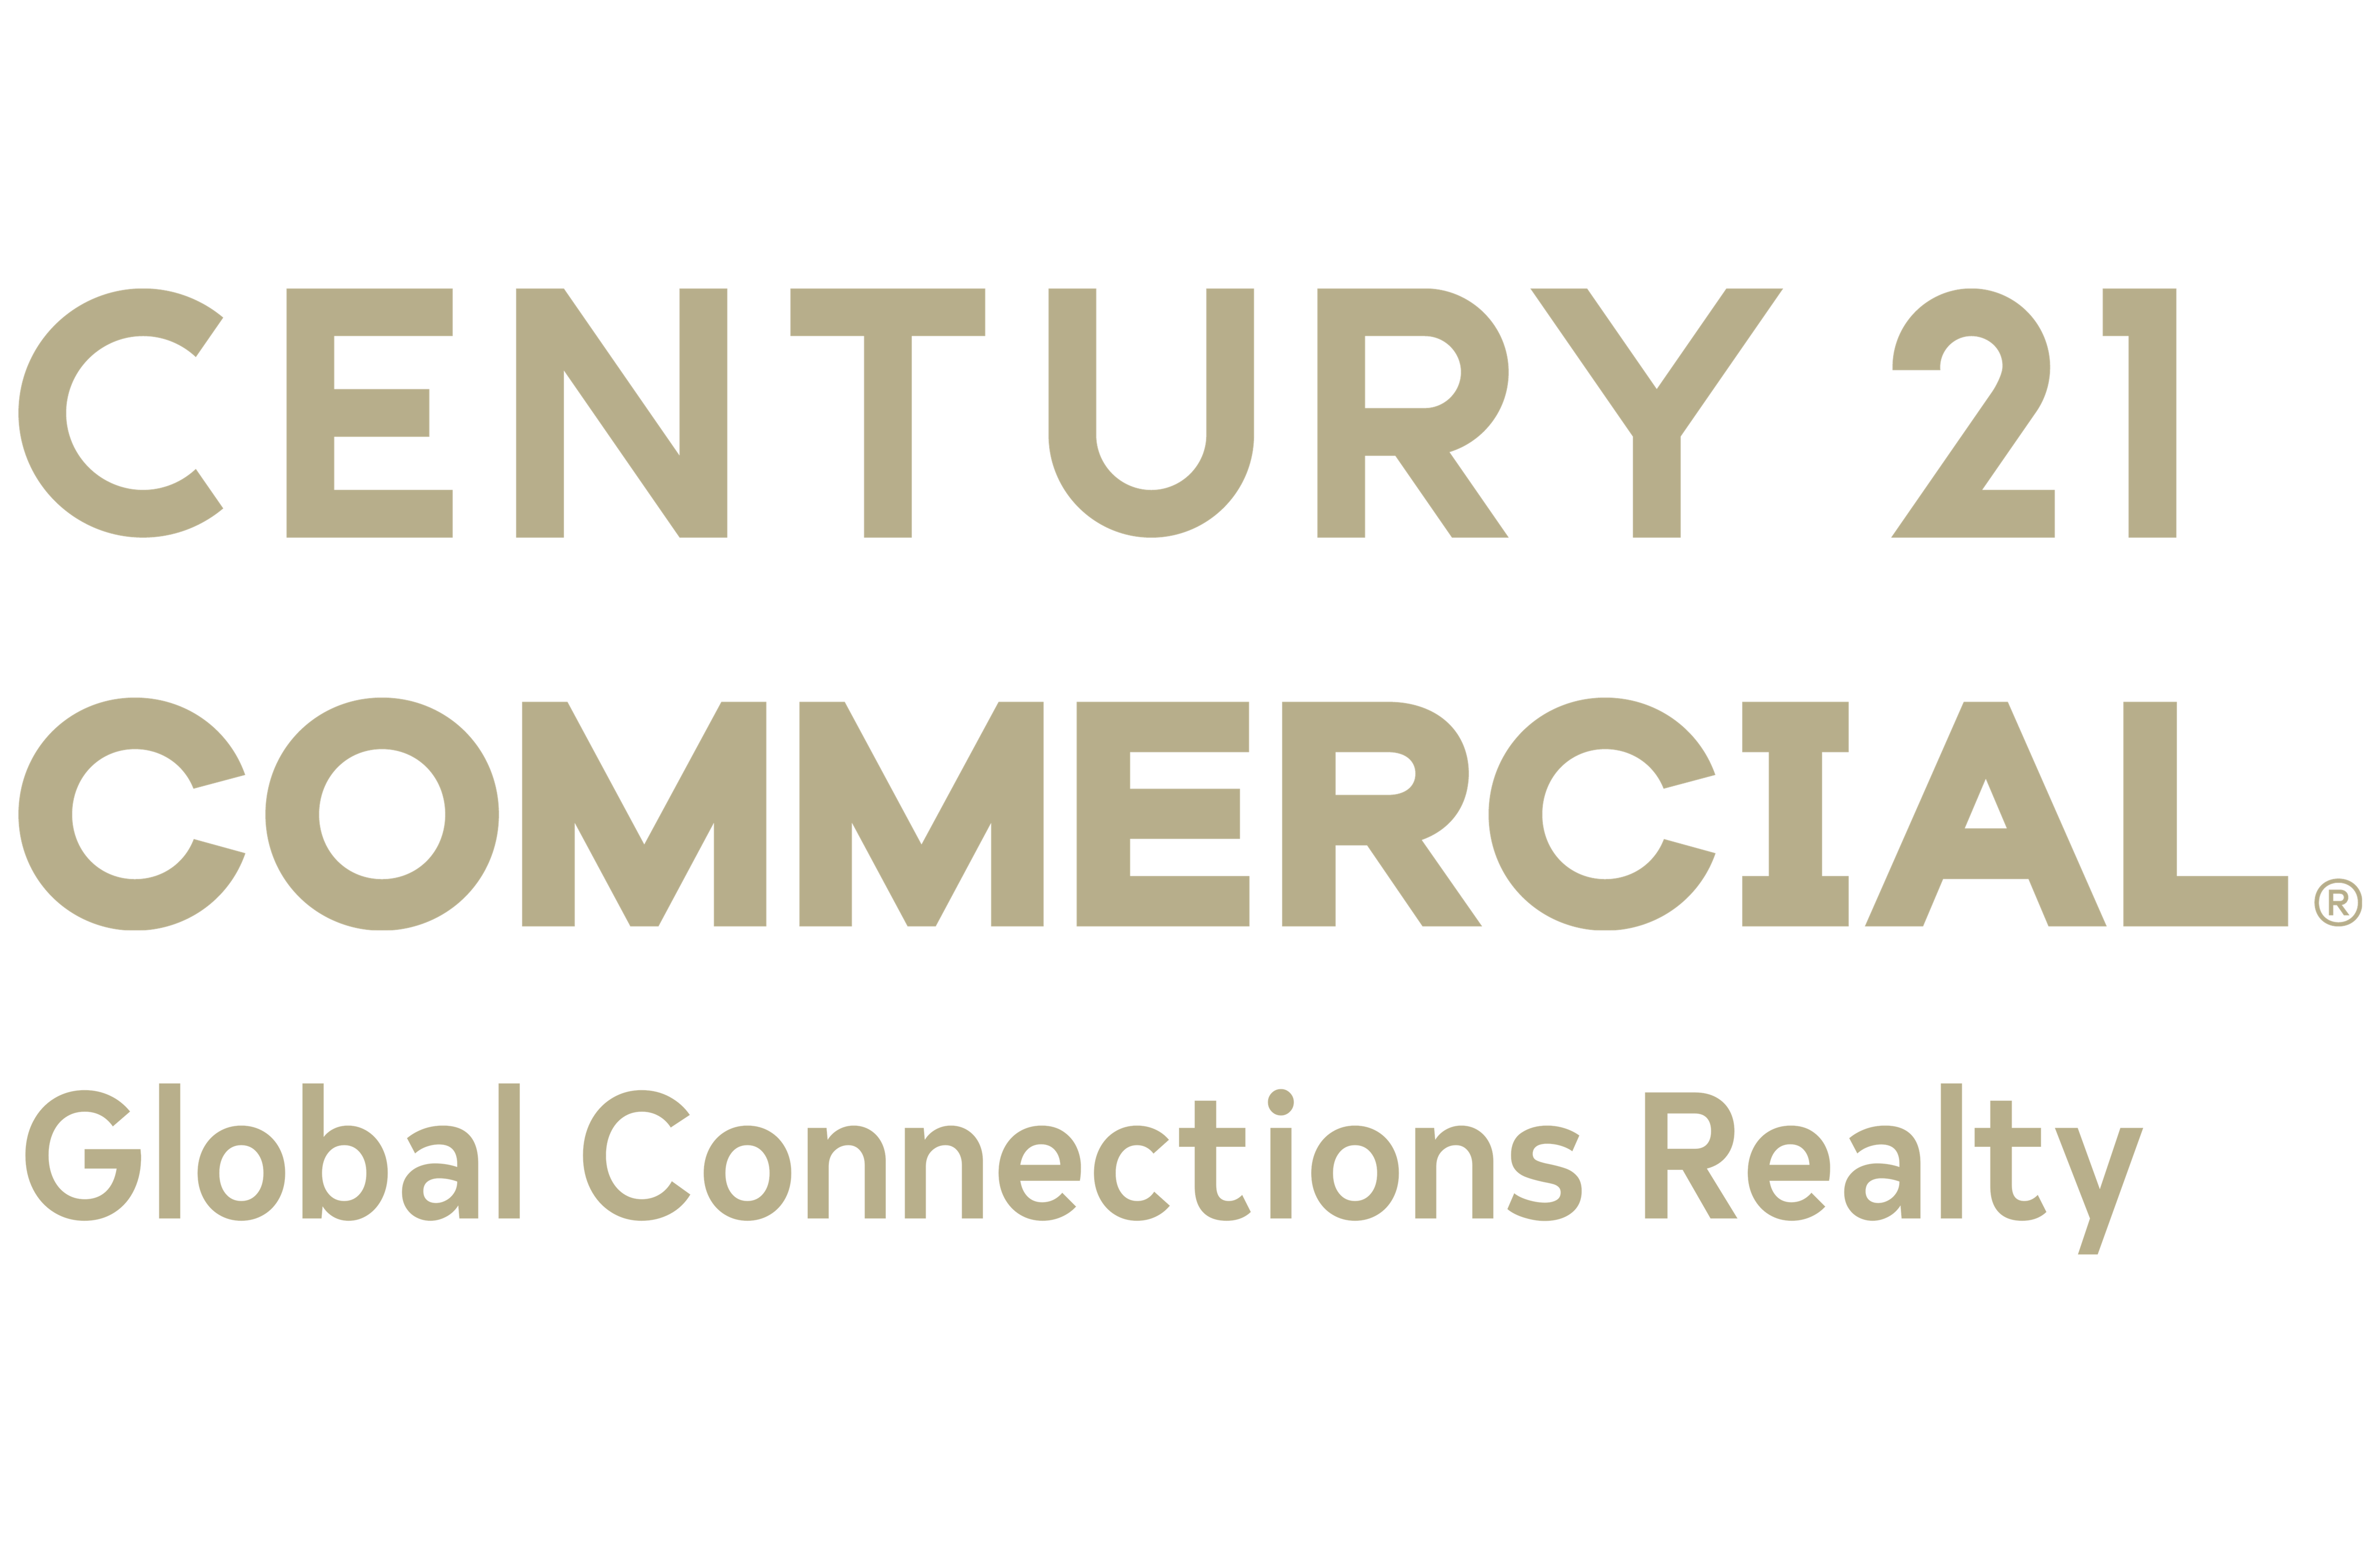 CENTURY 21 Global Connections Realty